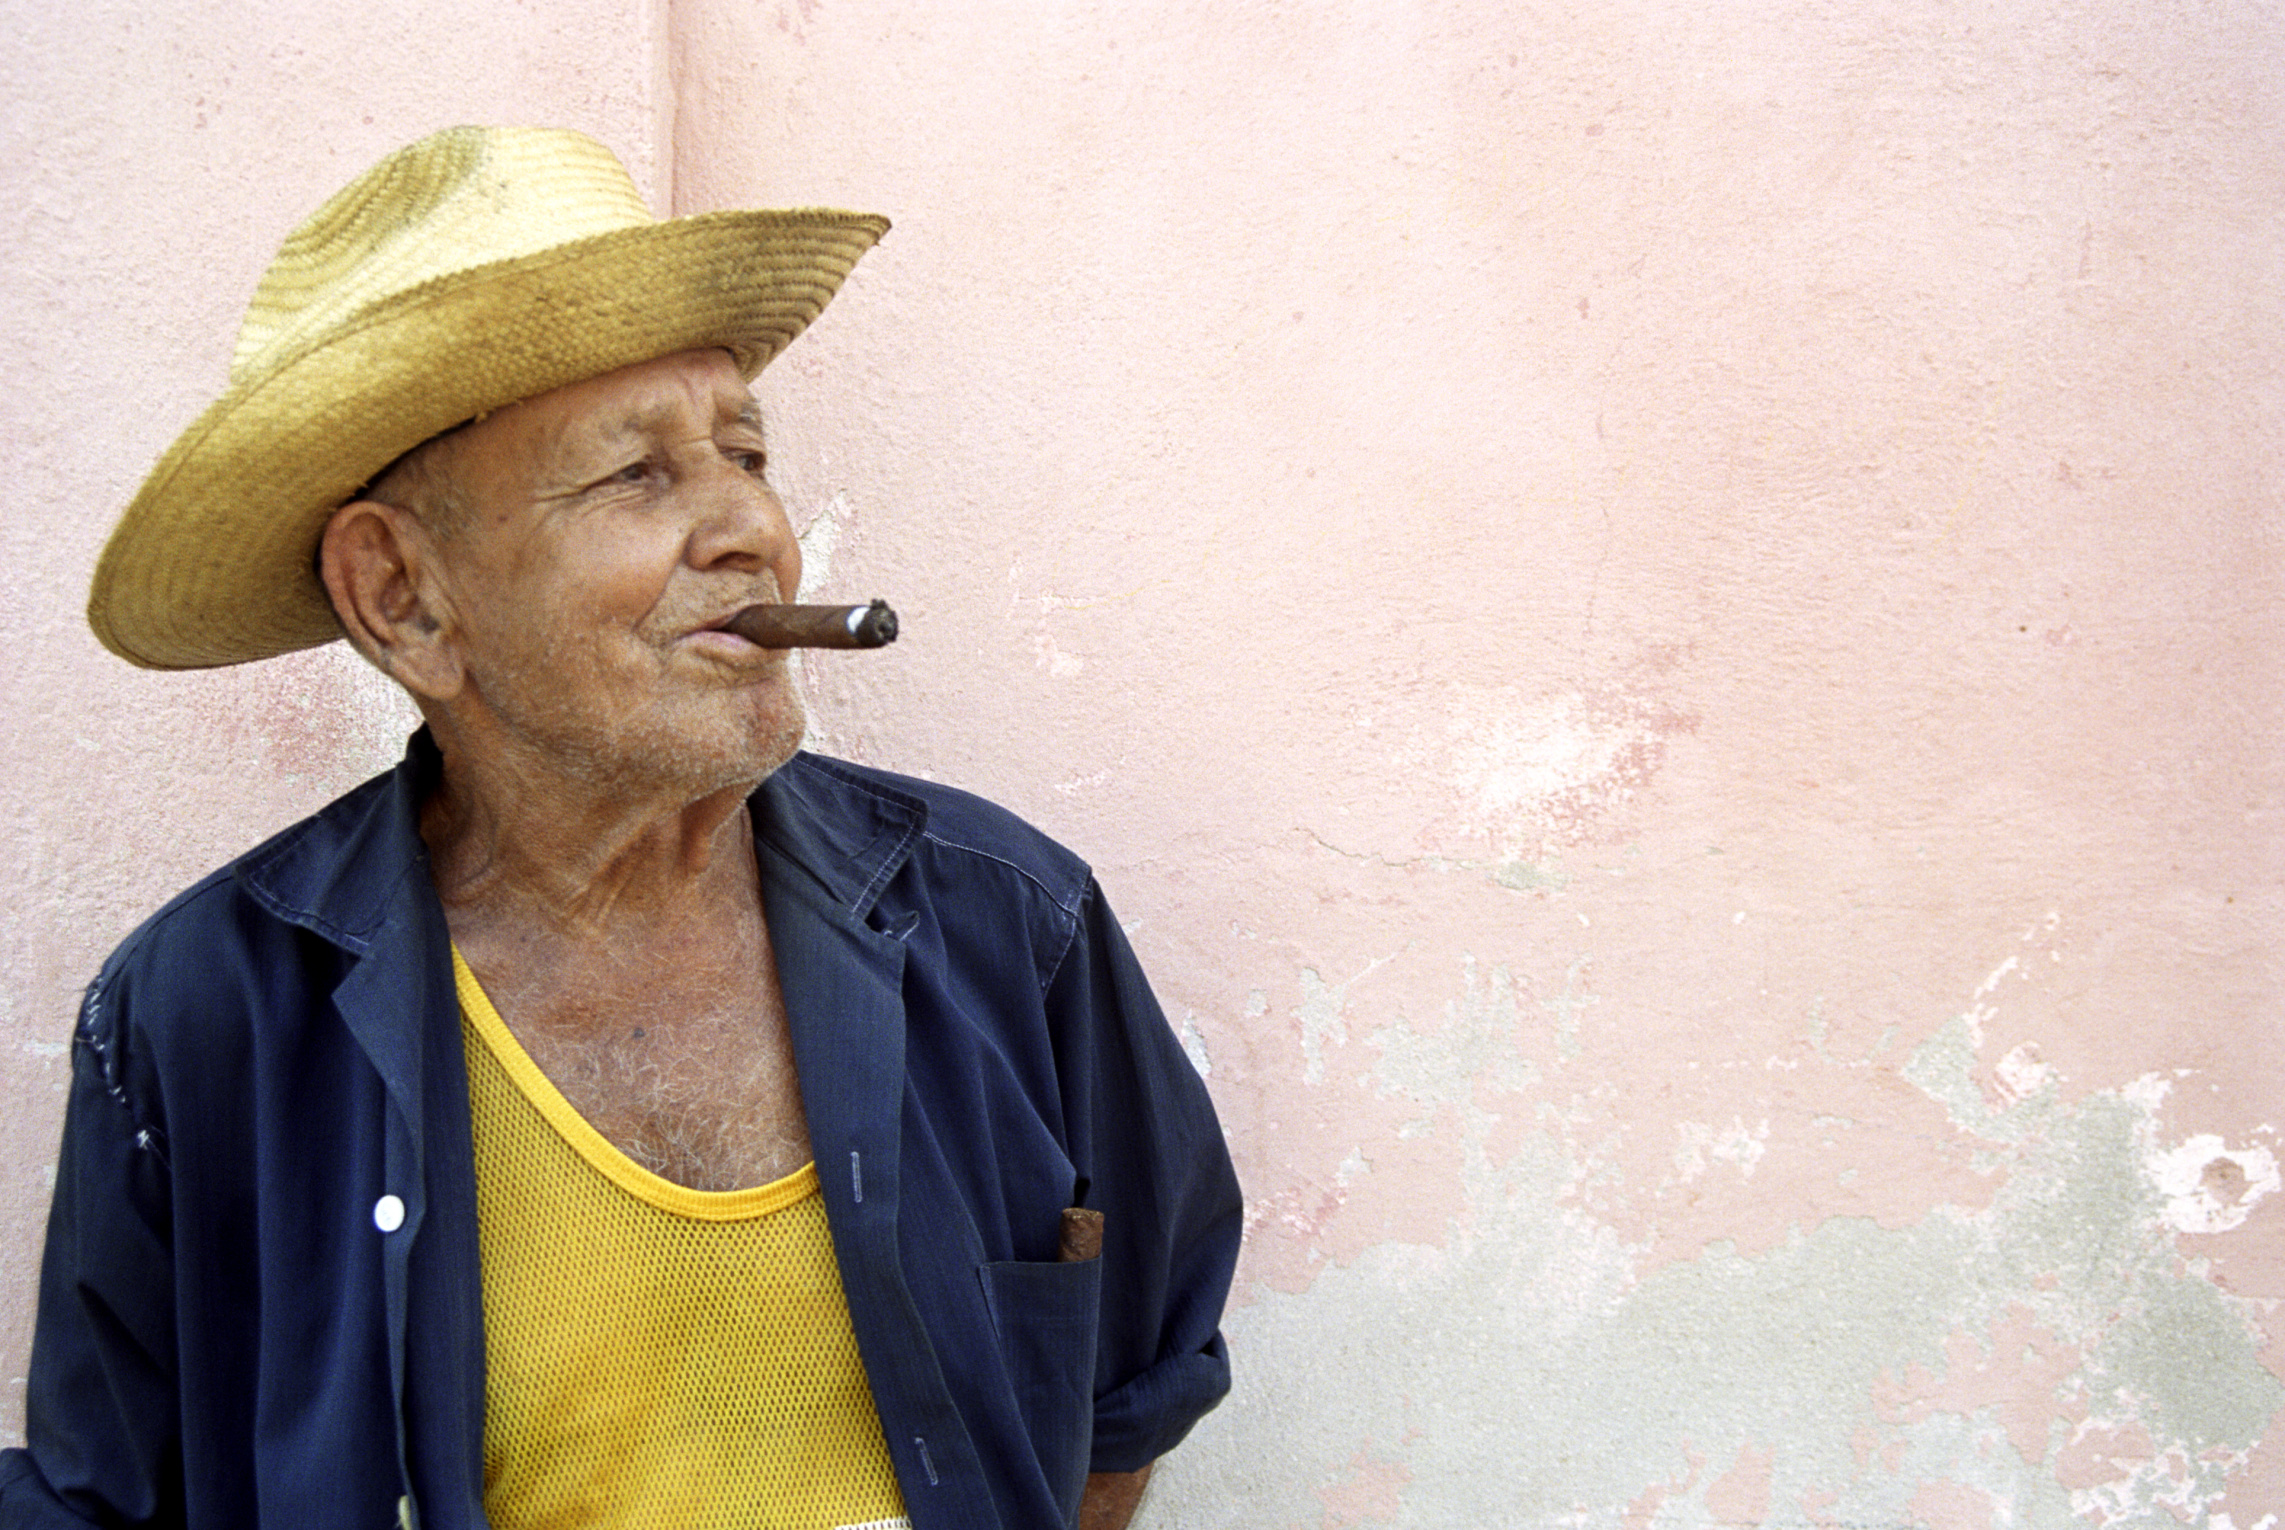 Cuba, Trinidad, senior man smoking cigar, looking away